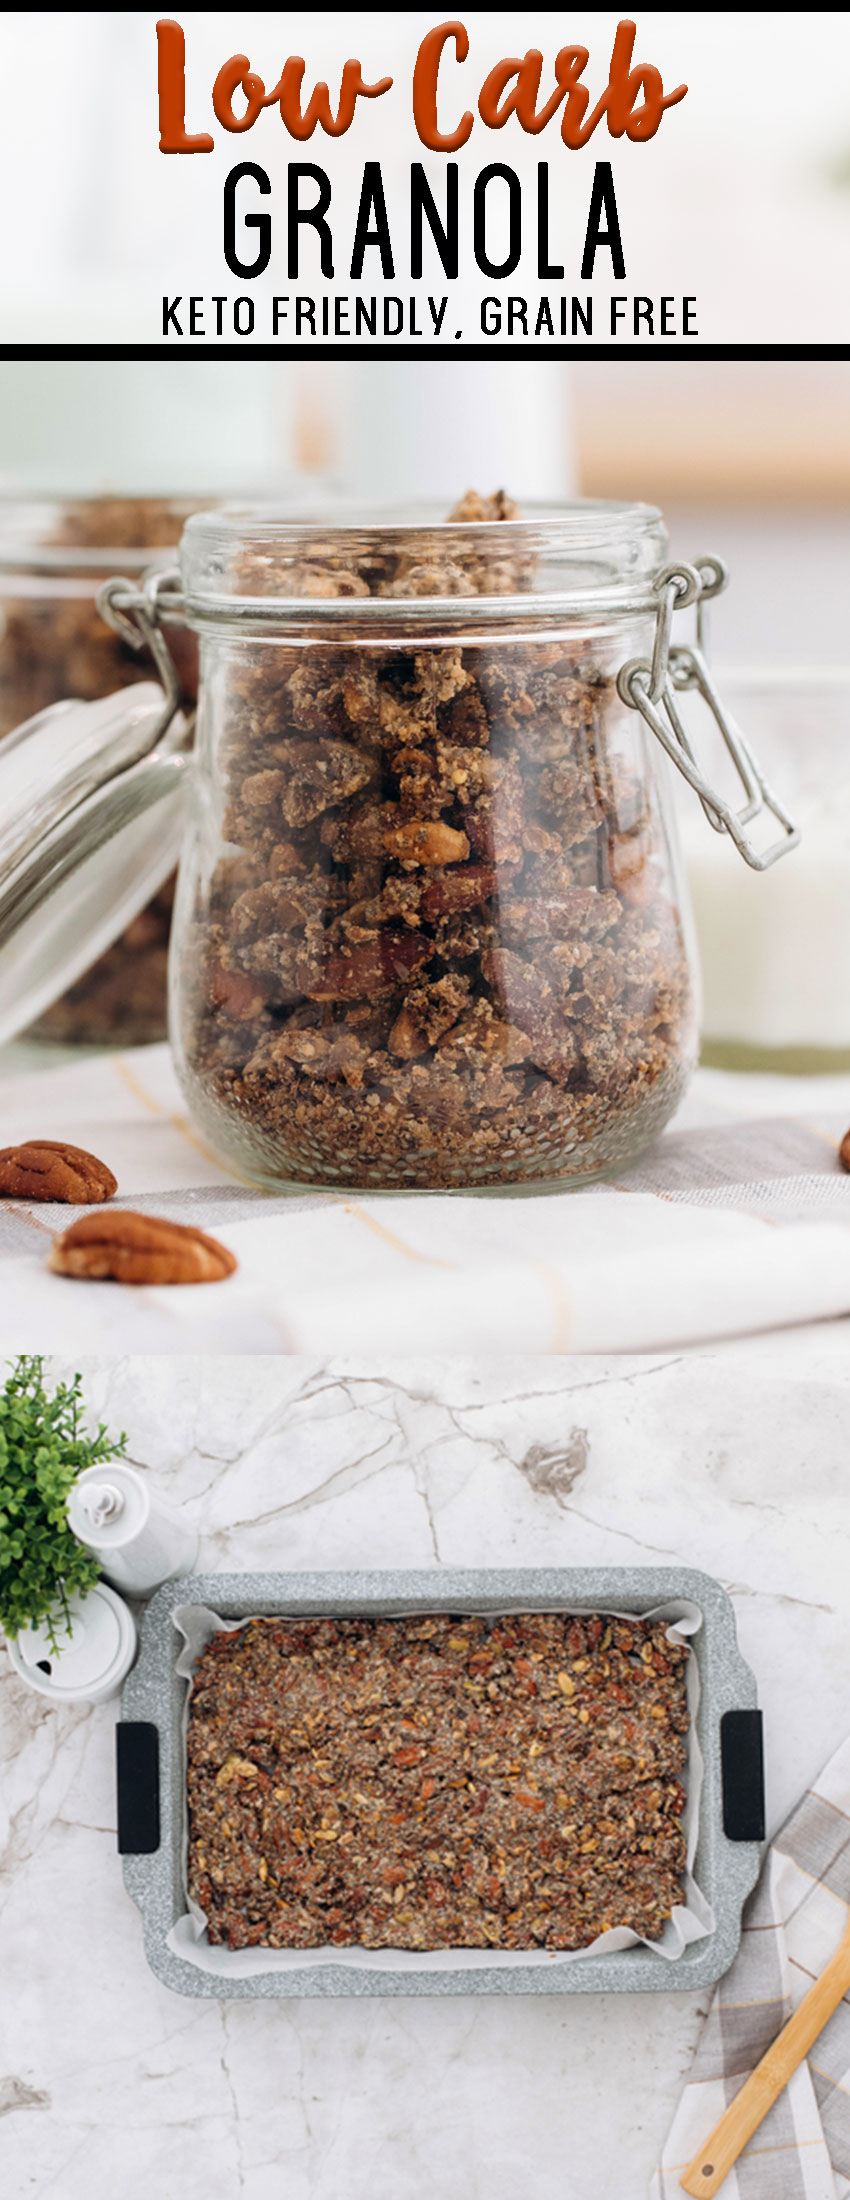 This delicious baked granola is homemade, and is keto friendly and low carb, has no grains.